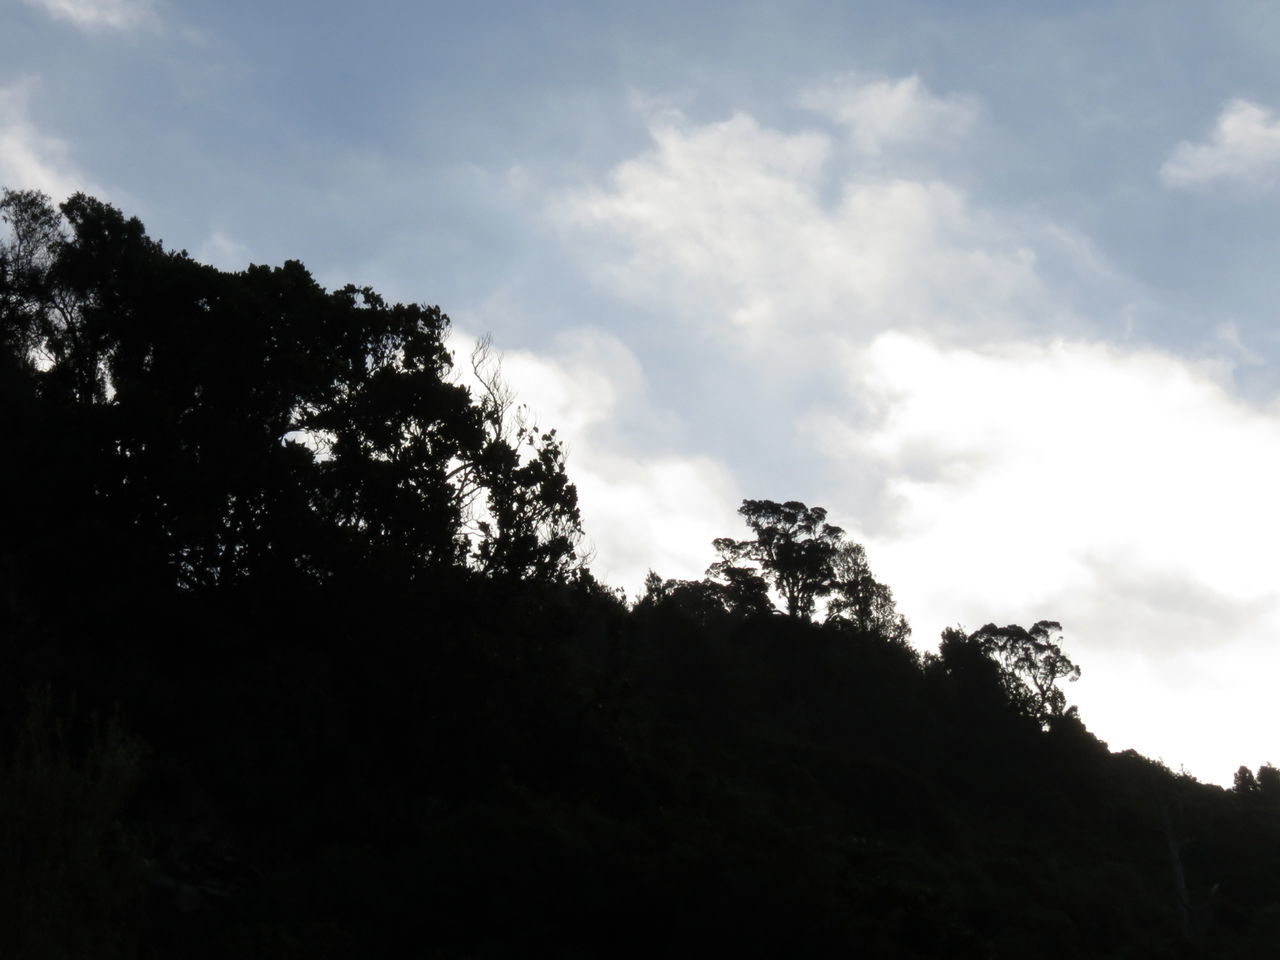 Tree Nature Silhouette Beauty In Nature Forest Landscape No People Outdoors Sky Day Scenics Environment Freshness Aotearoa Exploration Scenic View Rural Scene Relaxing Mountain Range Nature Reserve Native Bush Manawatugorge New Zealand Growth Cloud - Sky